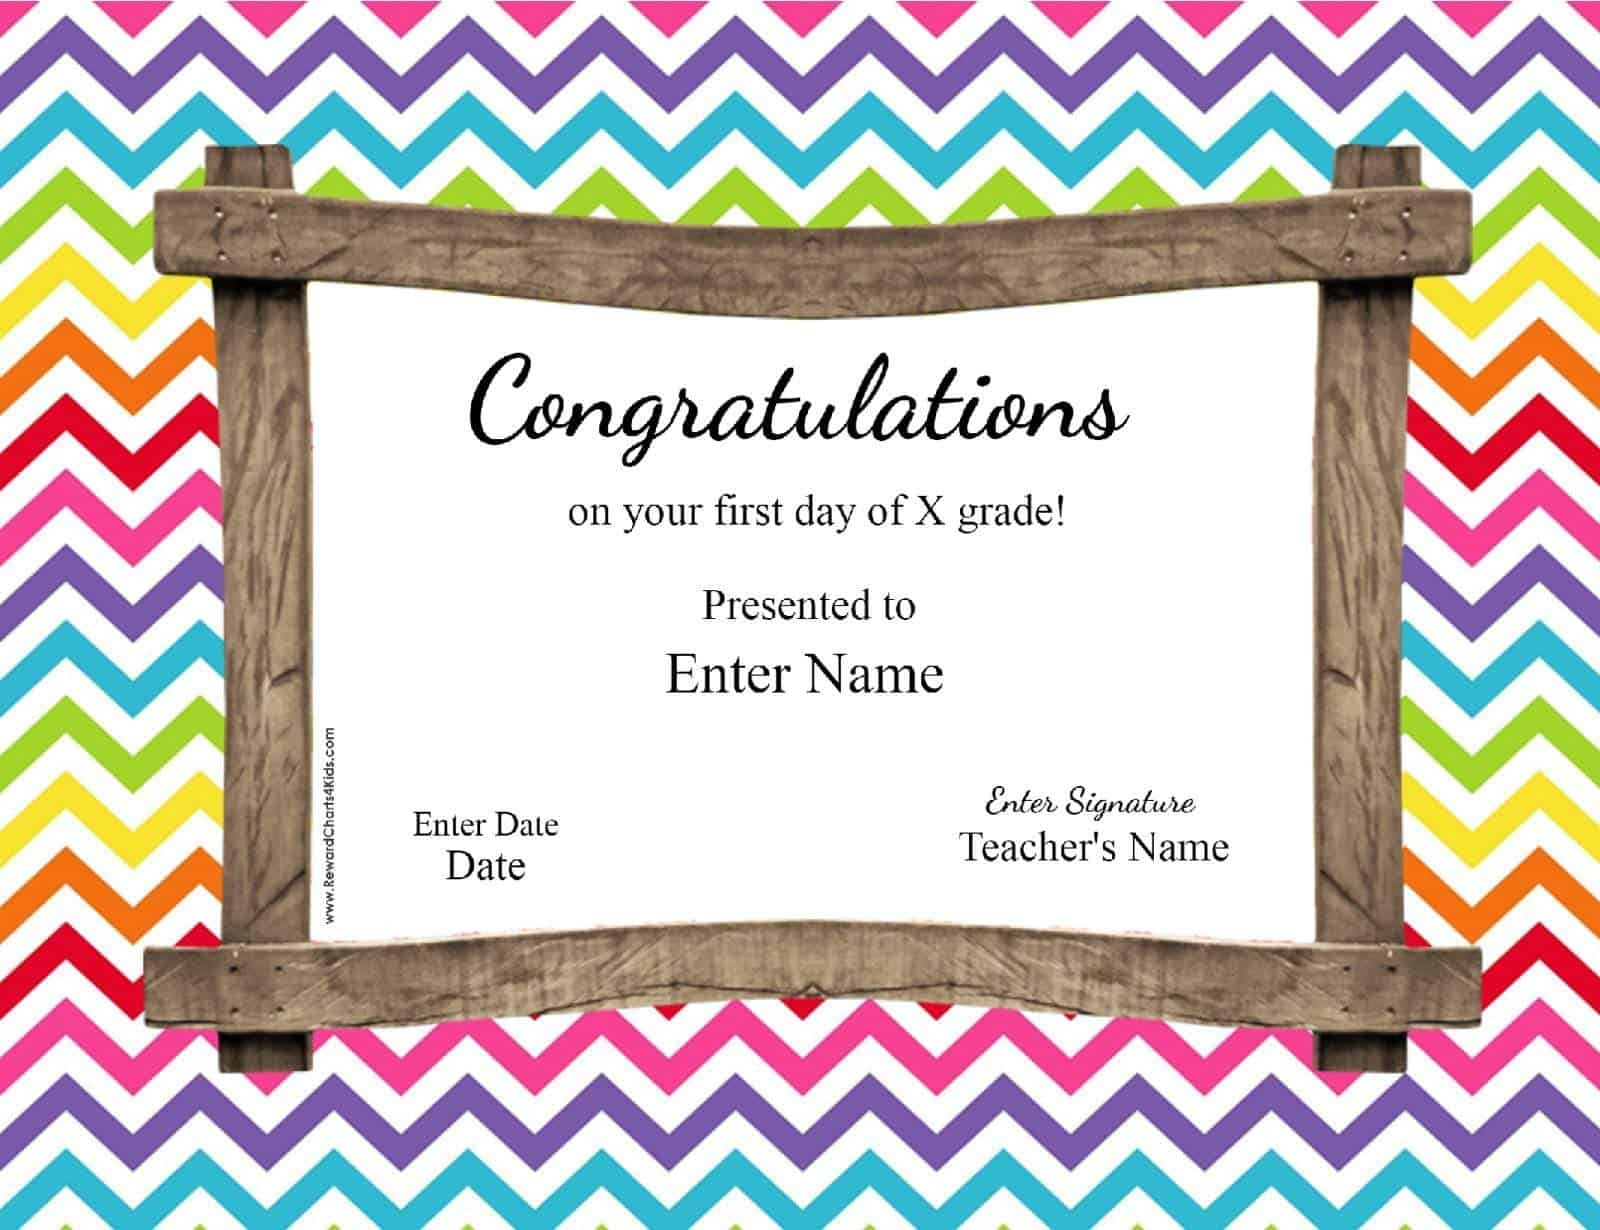 First Day Of School Certificate - Free Printable First Day Of School Certificate